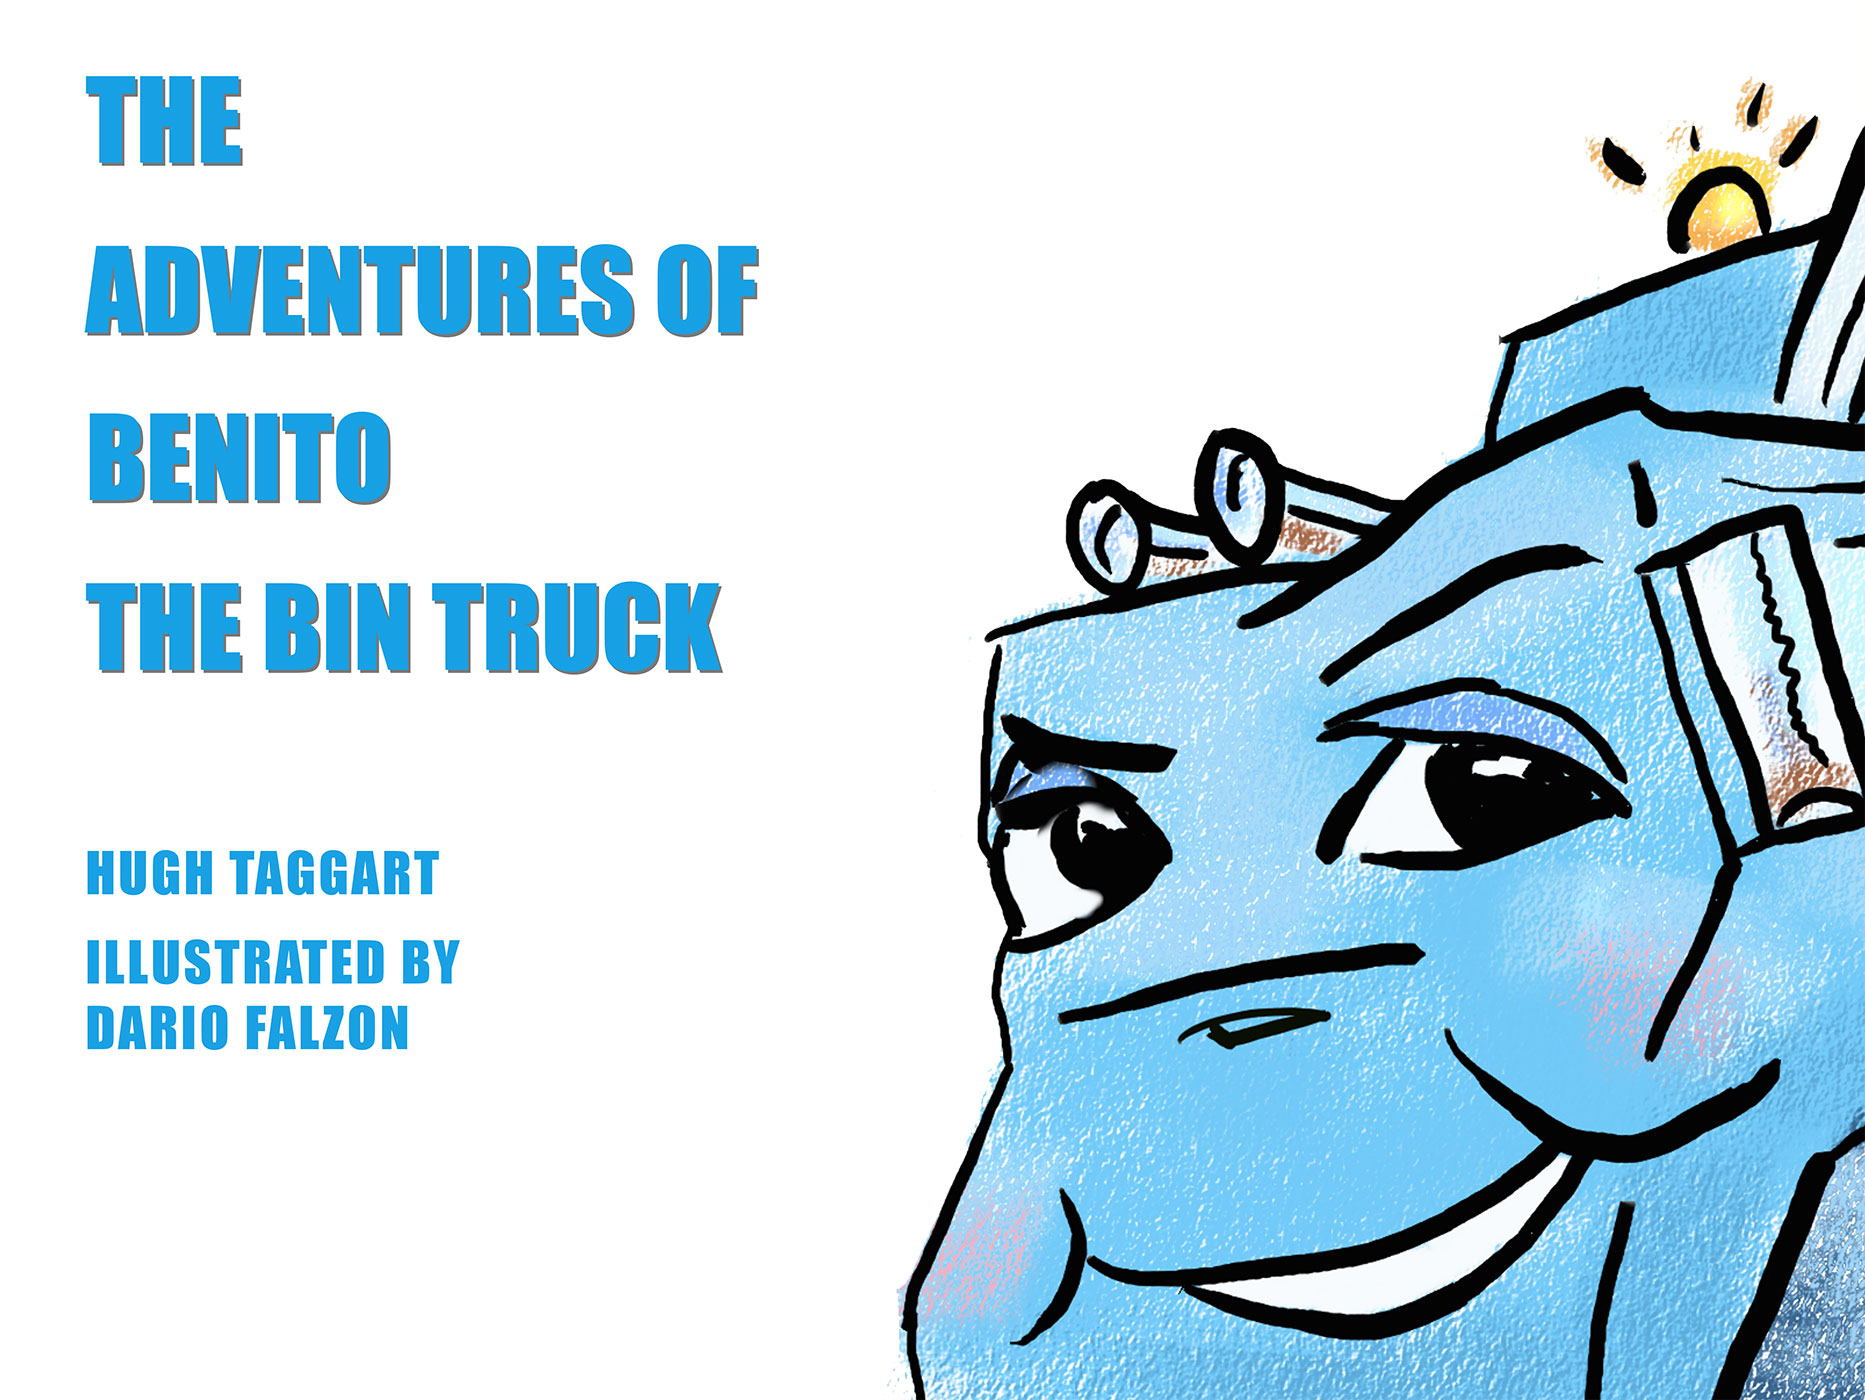 The Adventures of Benito the Bin Truck